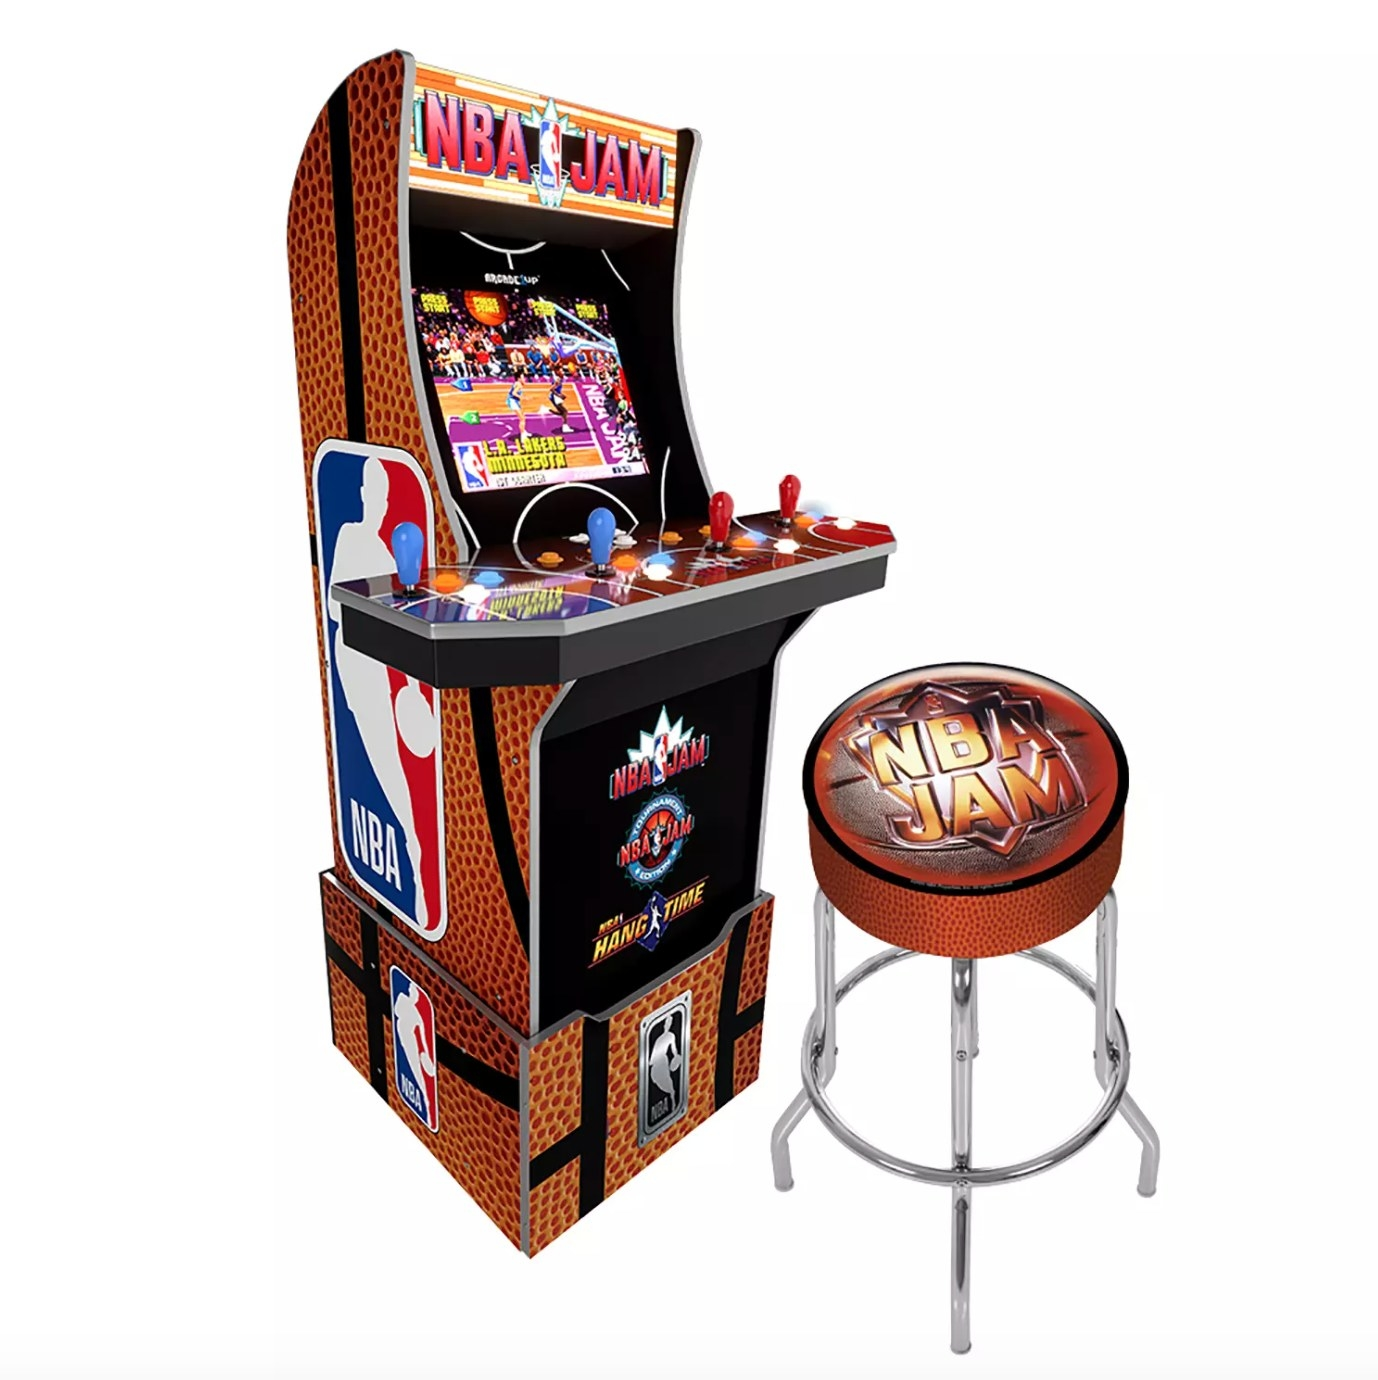 The NBA jam deluxe arcade game with a stool